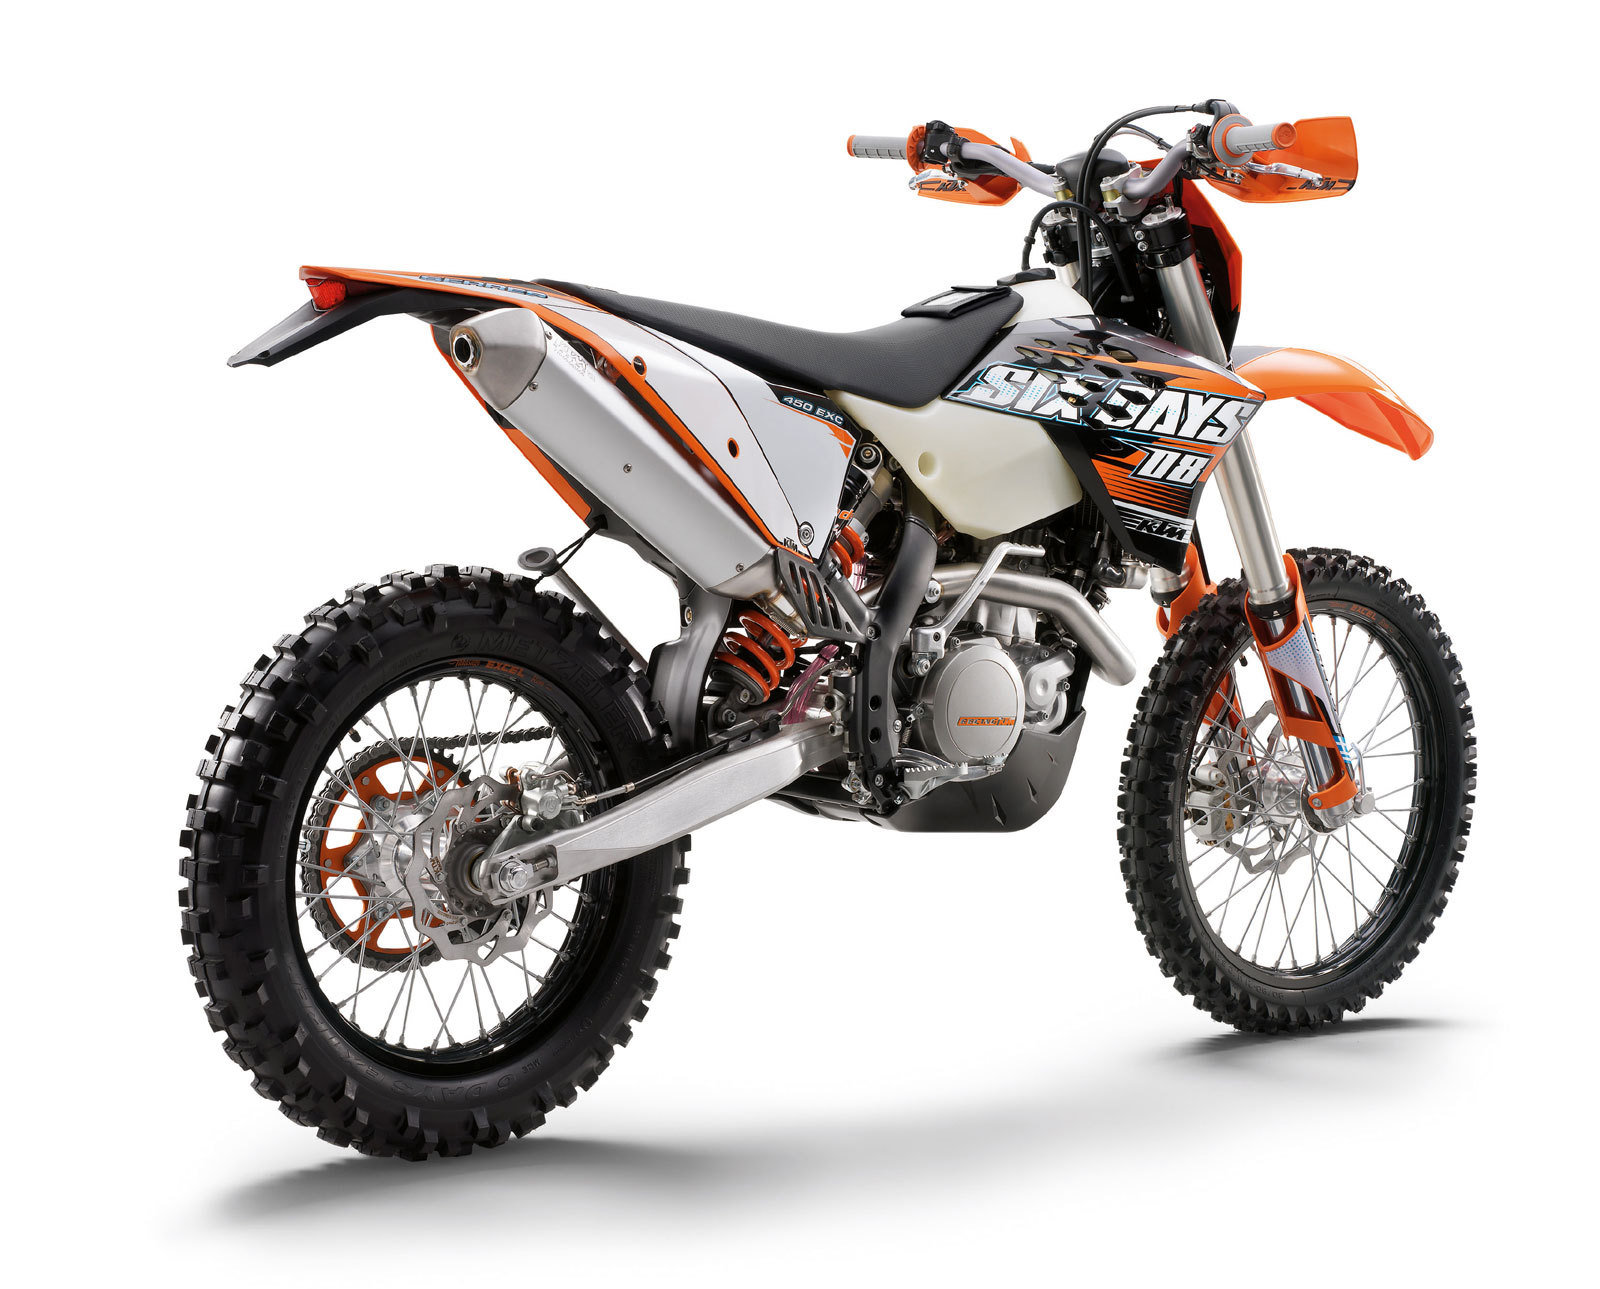 2013 ktm 450 exc six days picture 492987 motorcycle review top speed. Black Bedroom Furniture Sets. Home Design Ideas